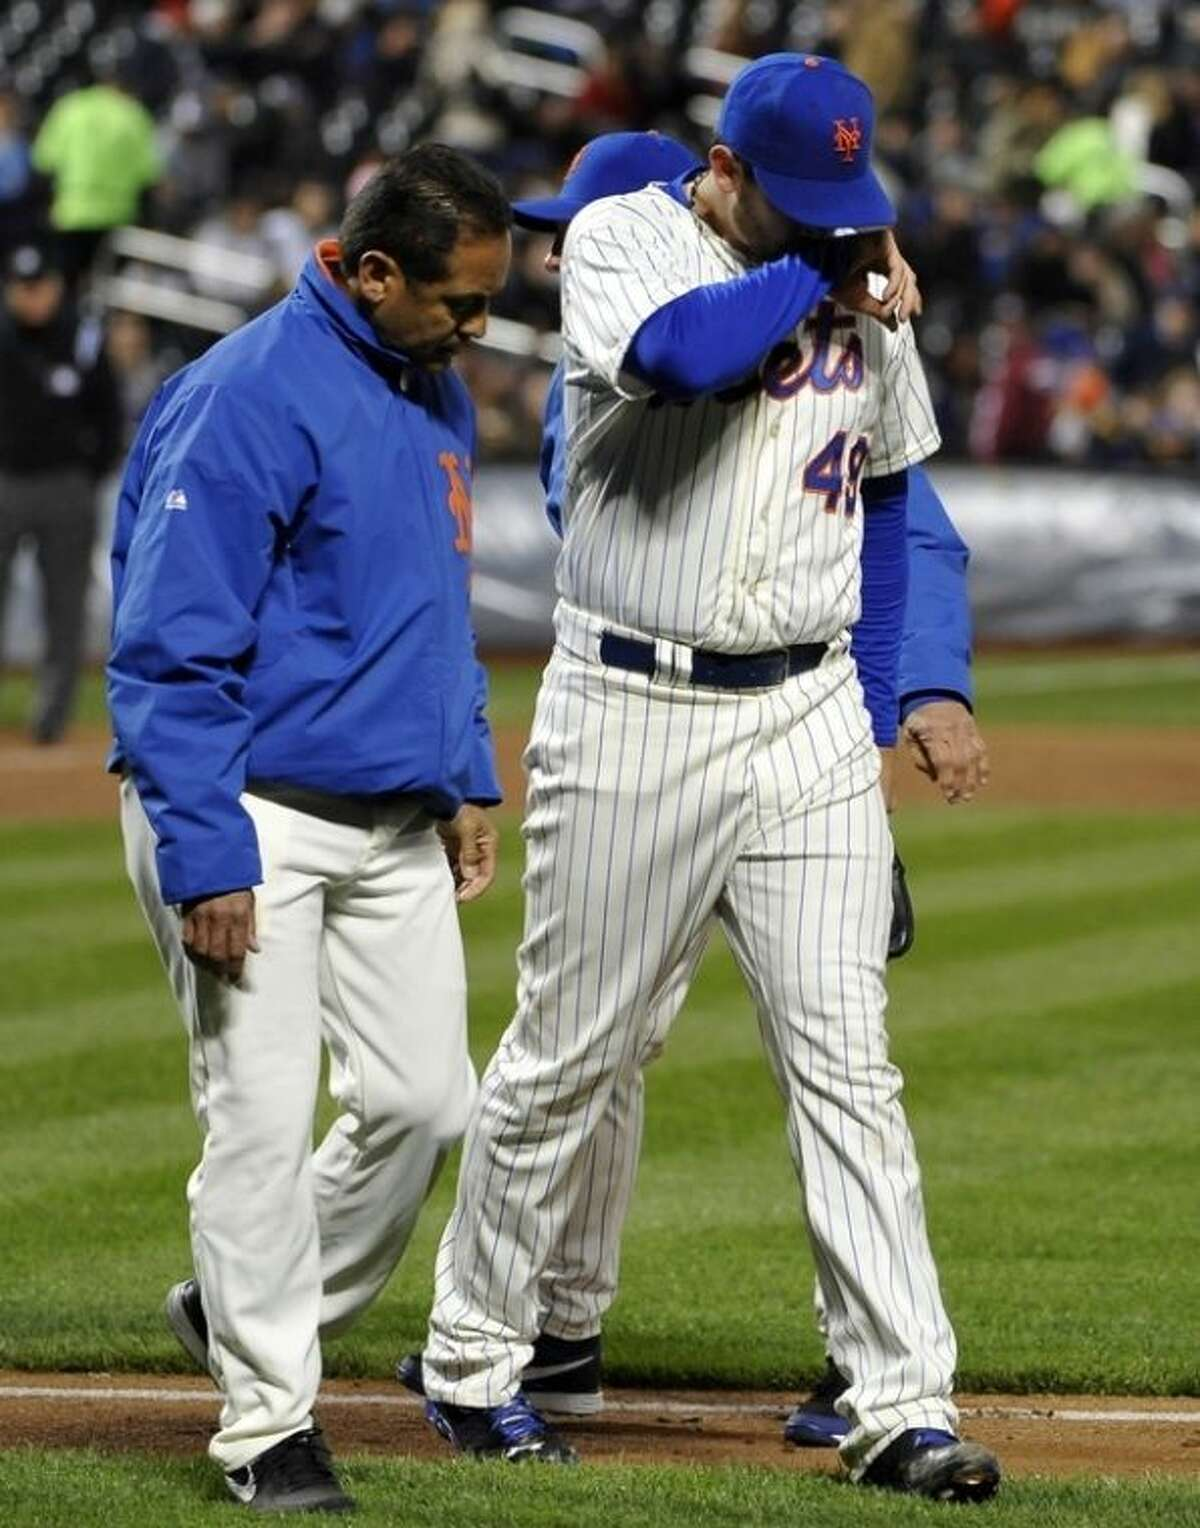 New York Mets trainer Ray Ramierez and manager Terry Collins, rear, help starting pitcher Jonathon Niese off the field after he was hit in the right foot by a ball hit by Los Angeles Dodgers' A.J. Ellis in the third inning of a baseball game at Citi Field, Tuesday, April 23, 2013, in New York. Niese left the game. (AP Photo/Kathy Kmonicek)